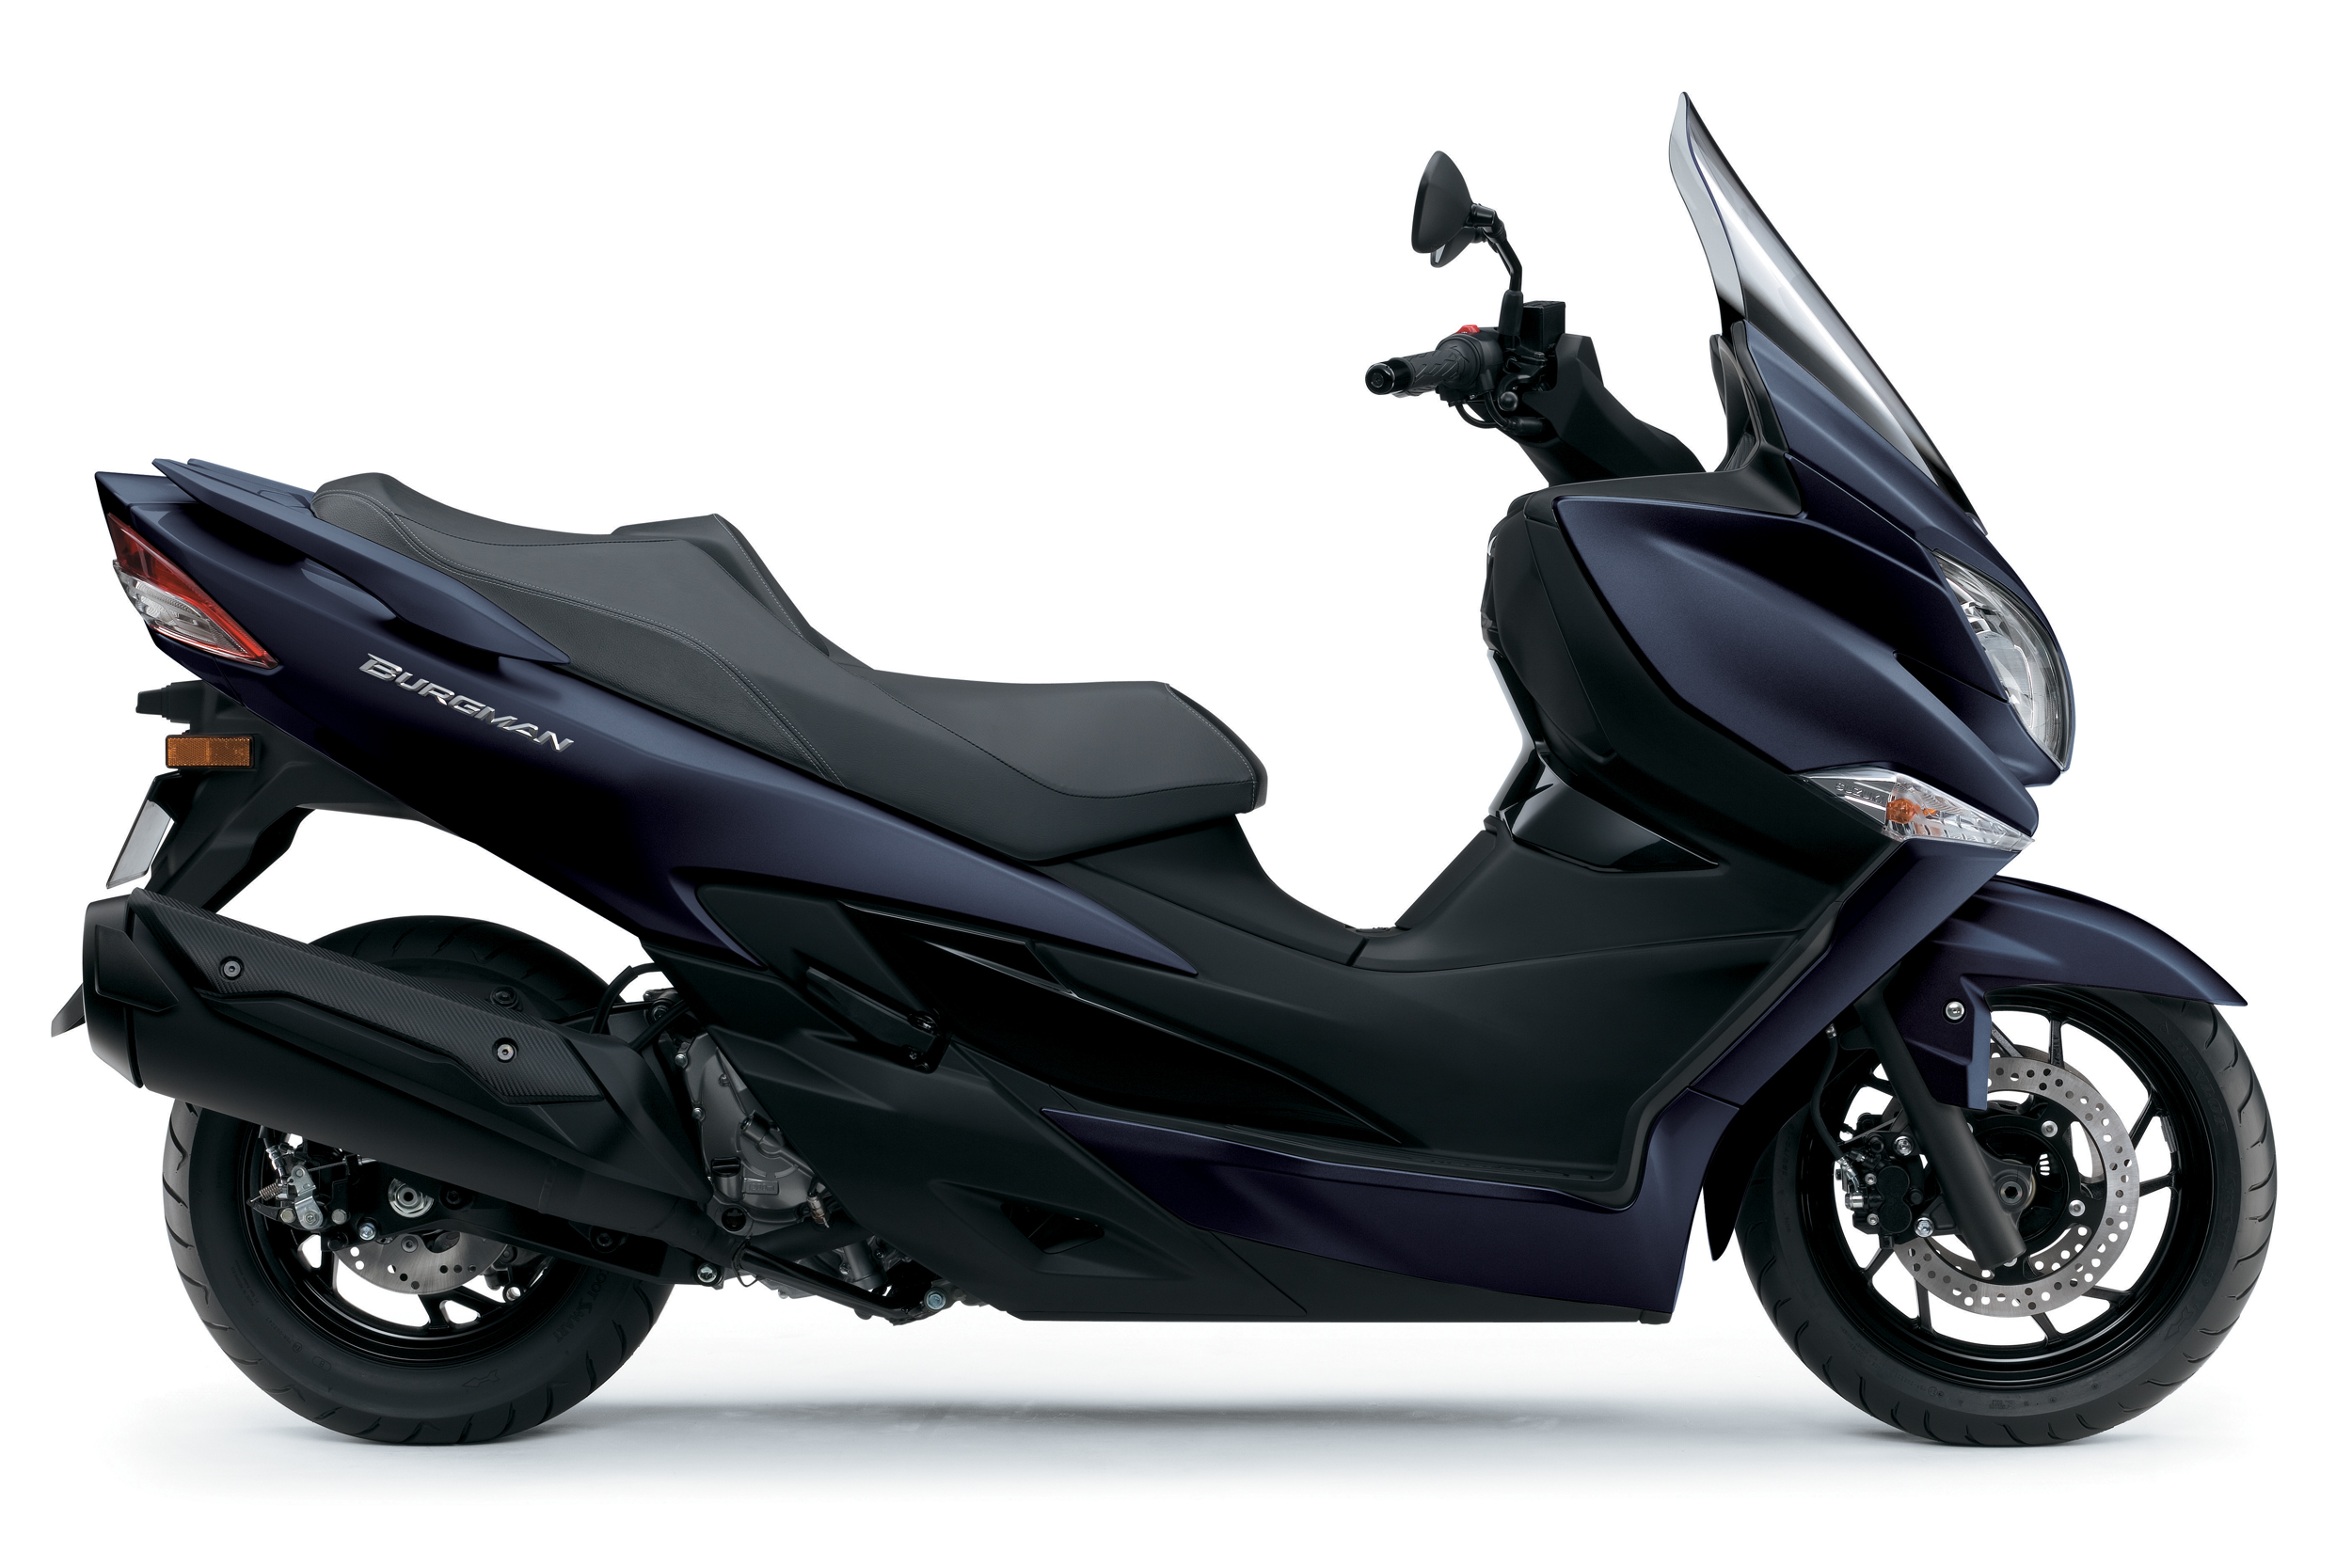 New BlueSuzuki Burgman 400